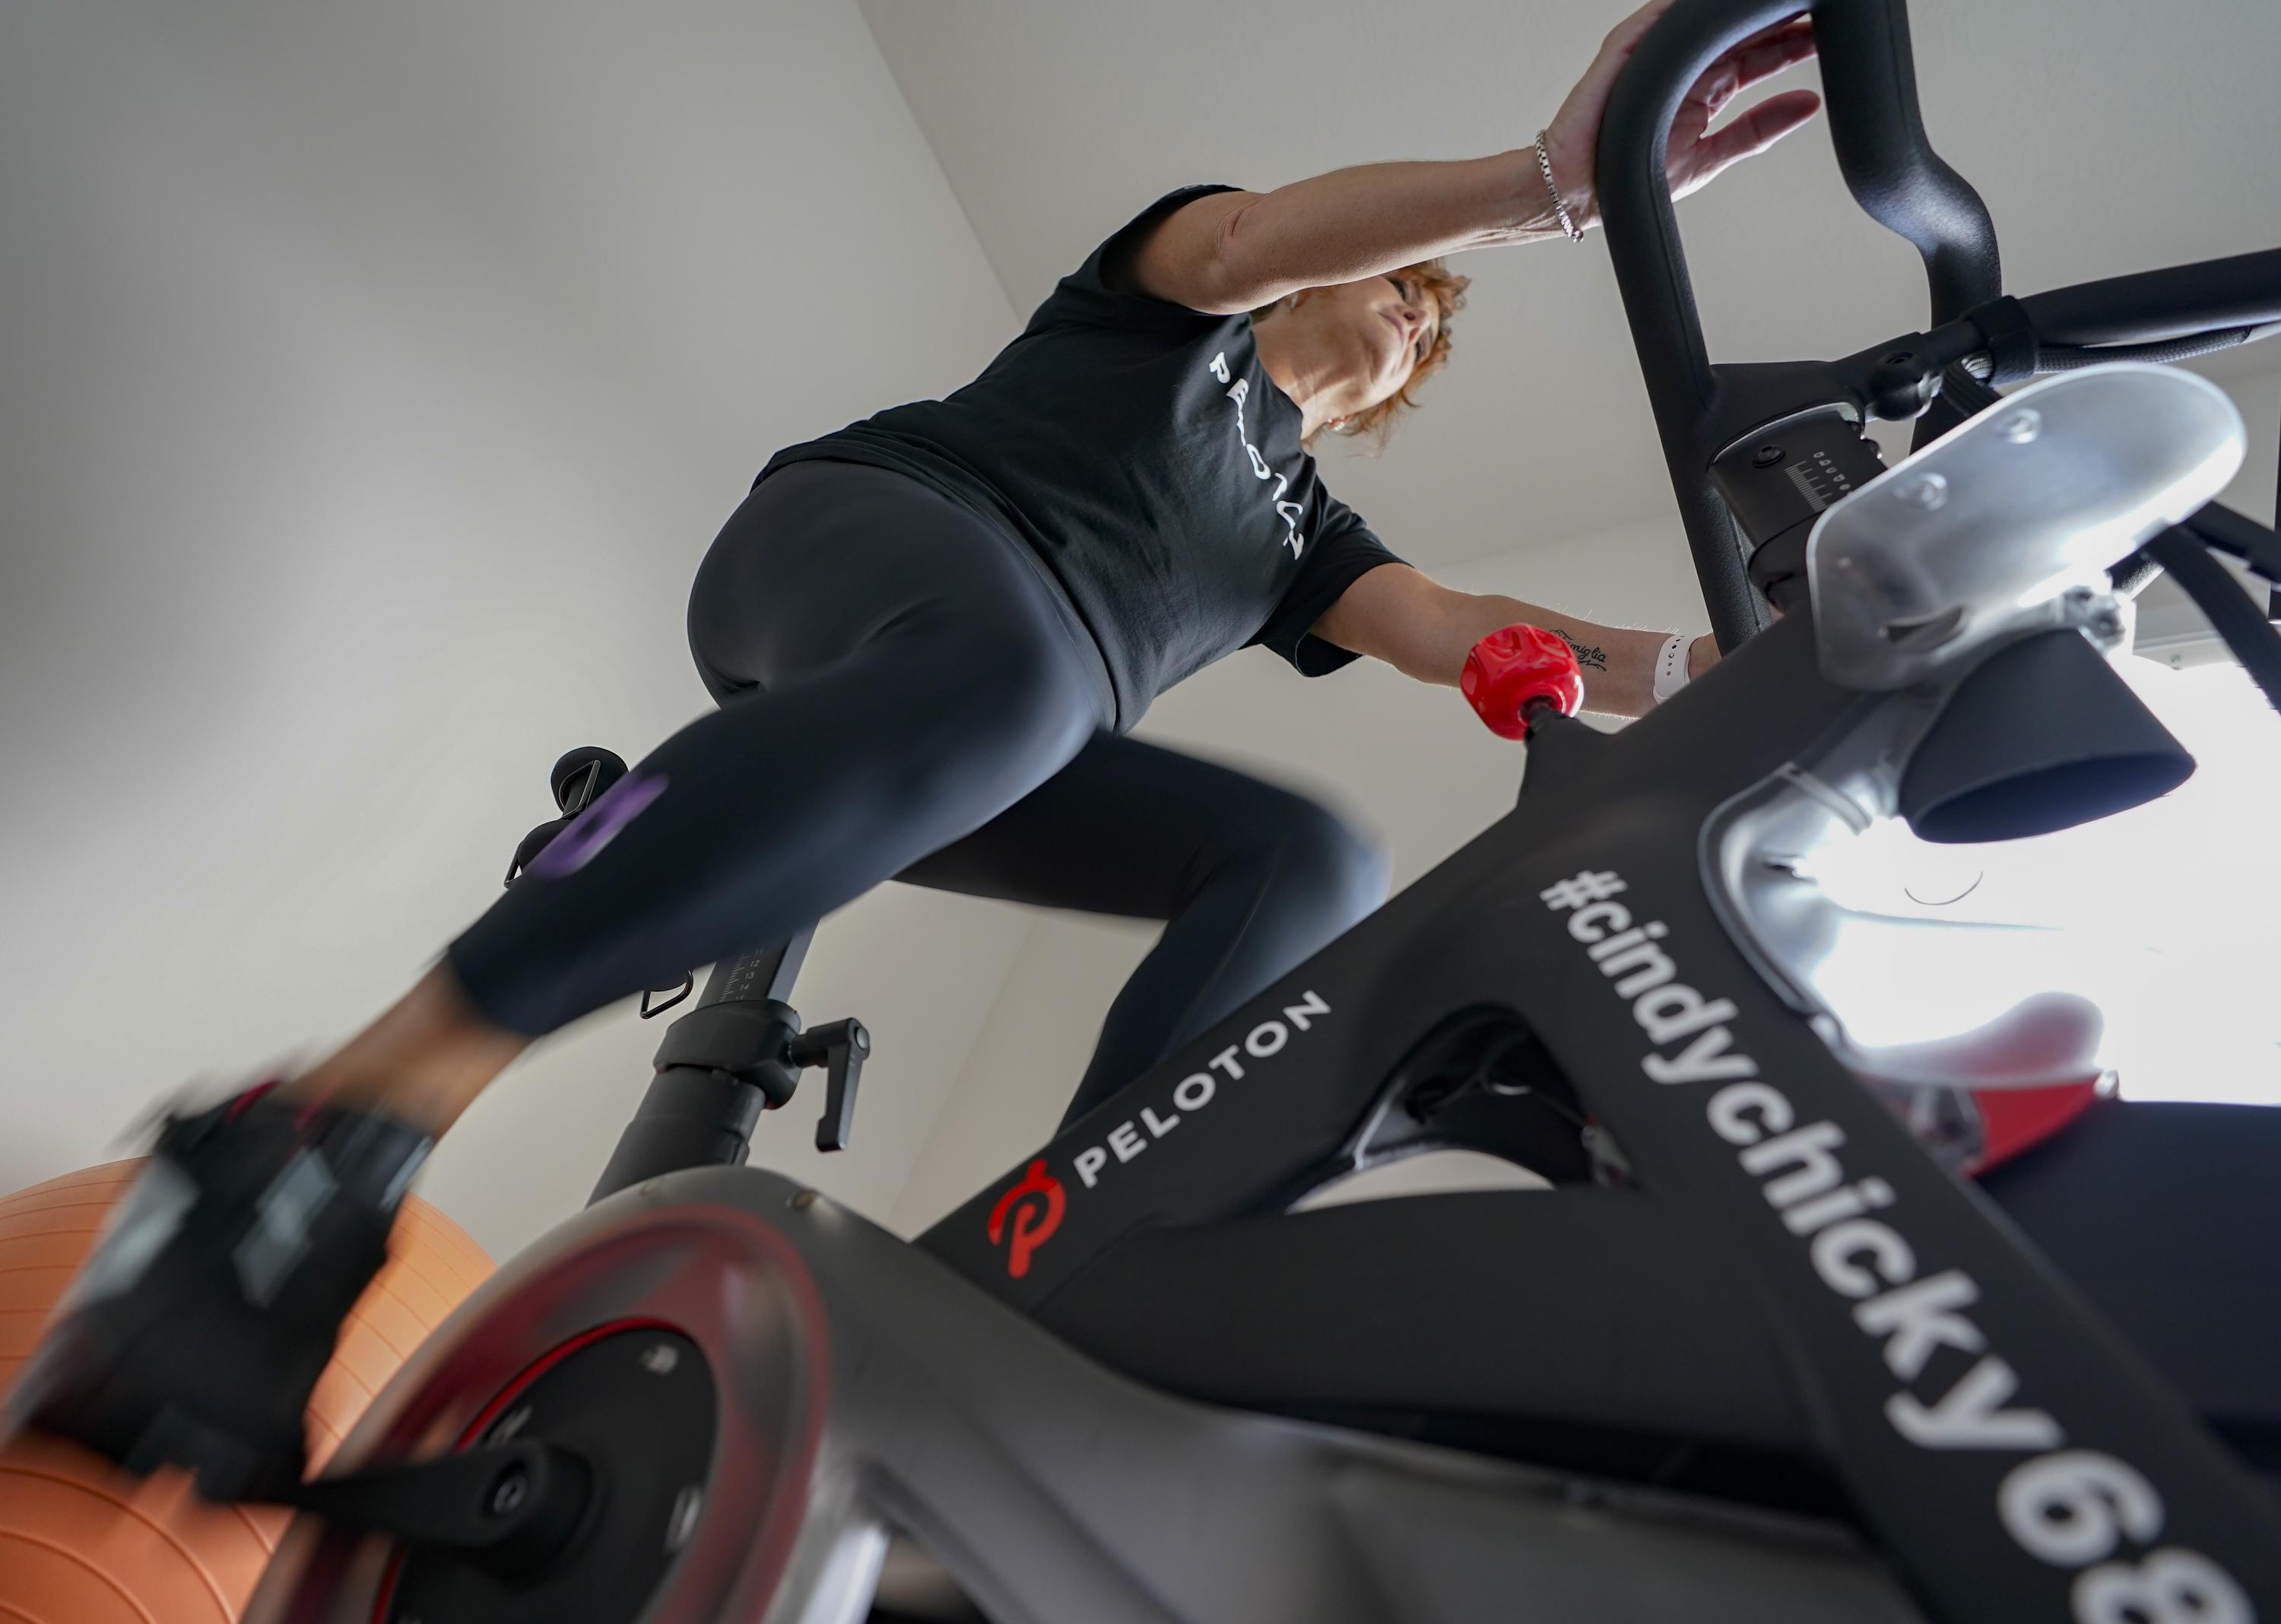 TOLEDO, Ohio (AP) — Going to the gym was always part of Kari Hamra's routine until last year's government-ordered shutdowns forced her to replac